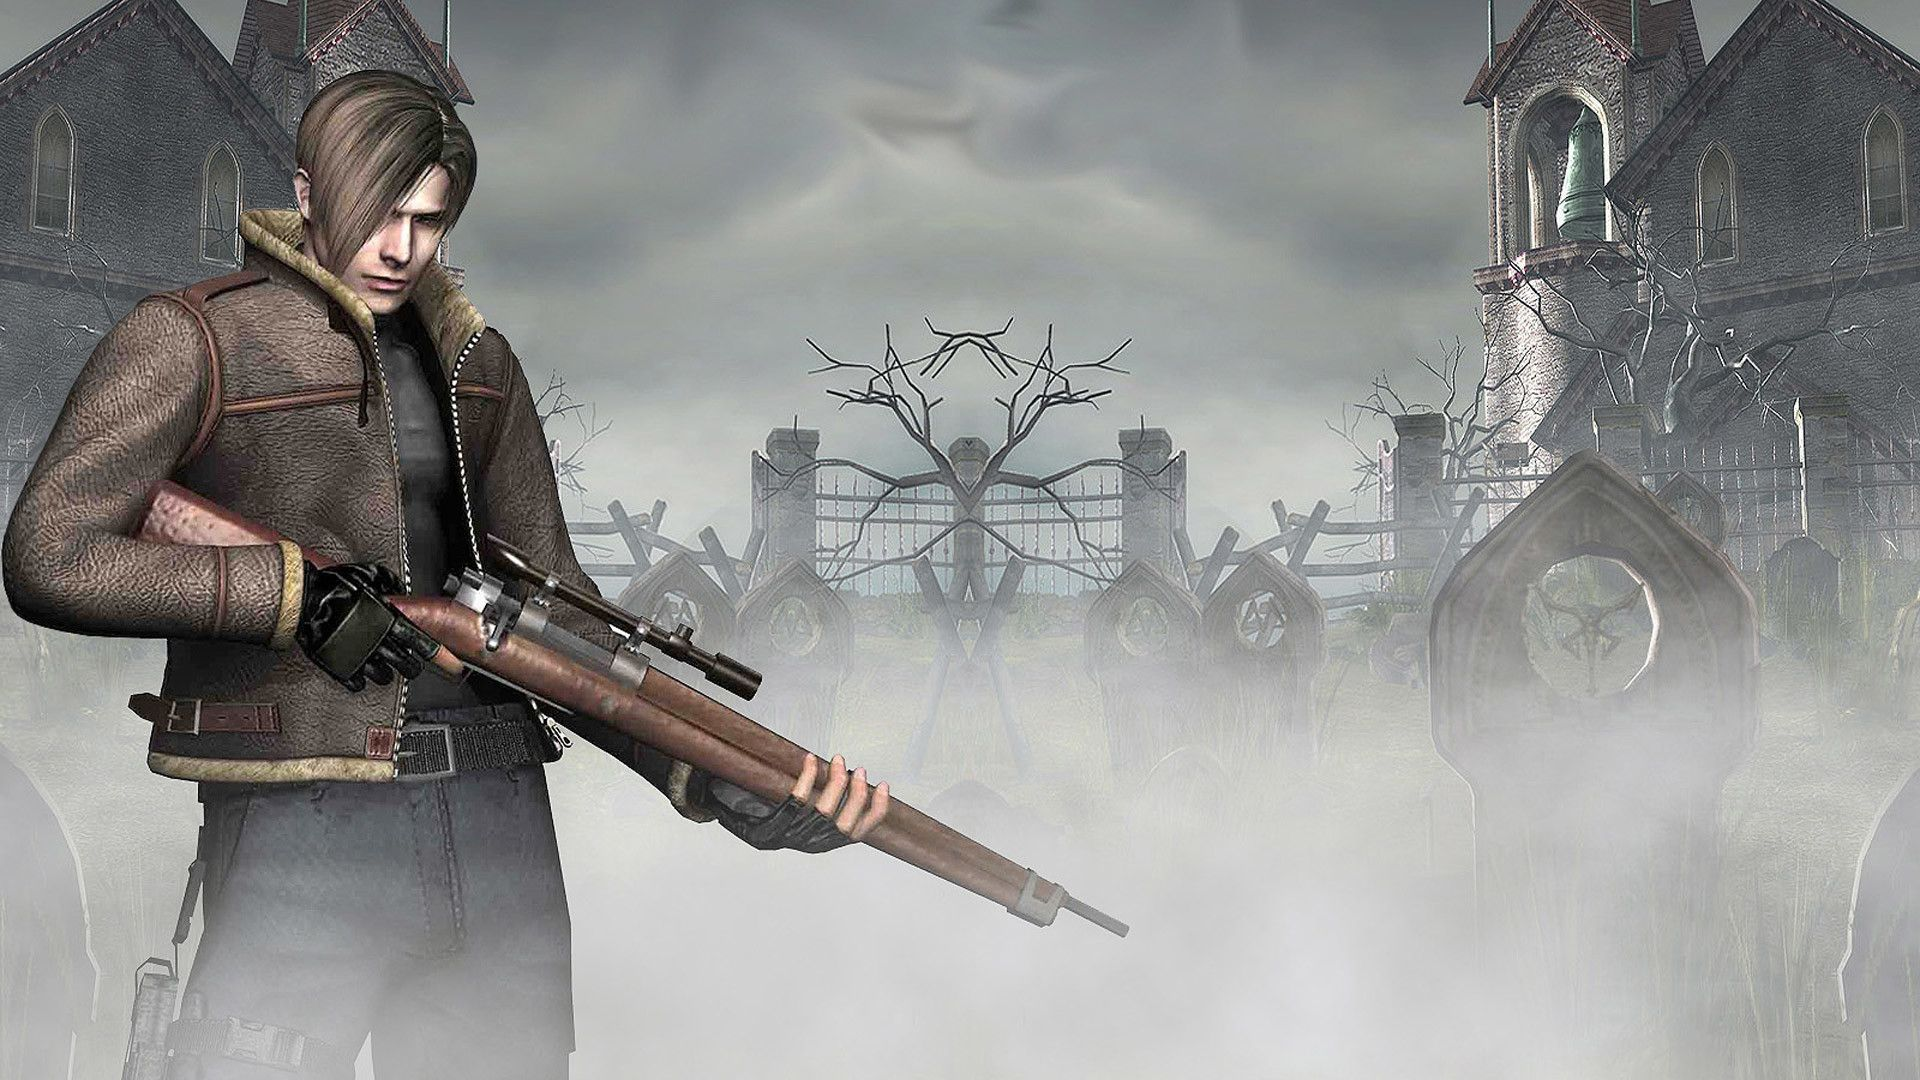 Resident Evil 4 Hd Wallpaper 5 1920 X 1080 Stmednet